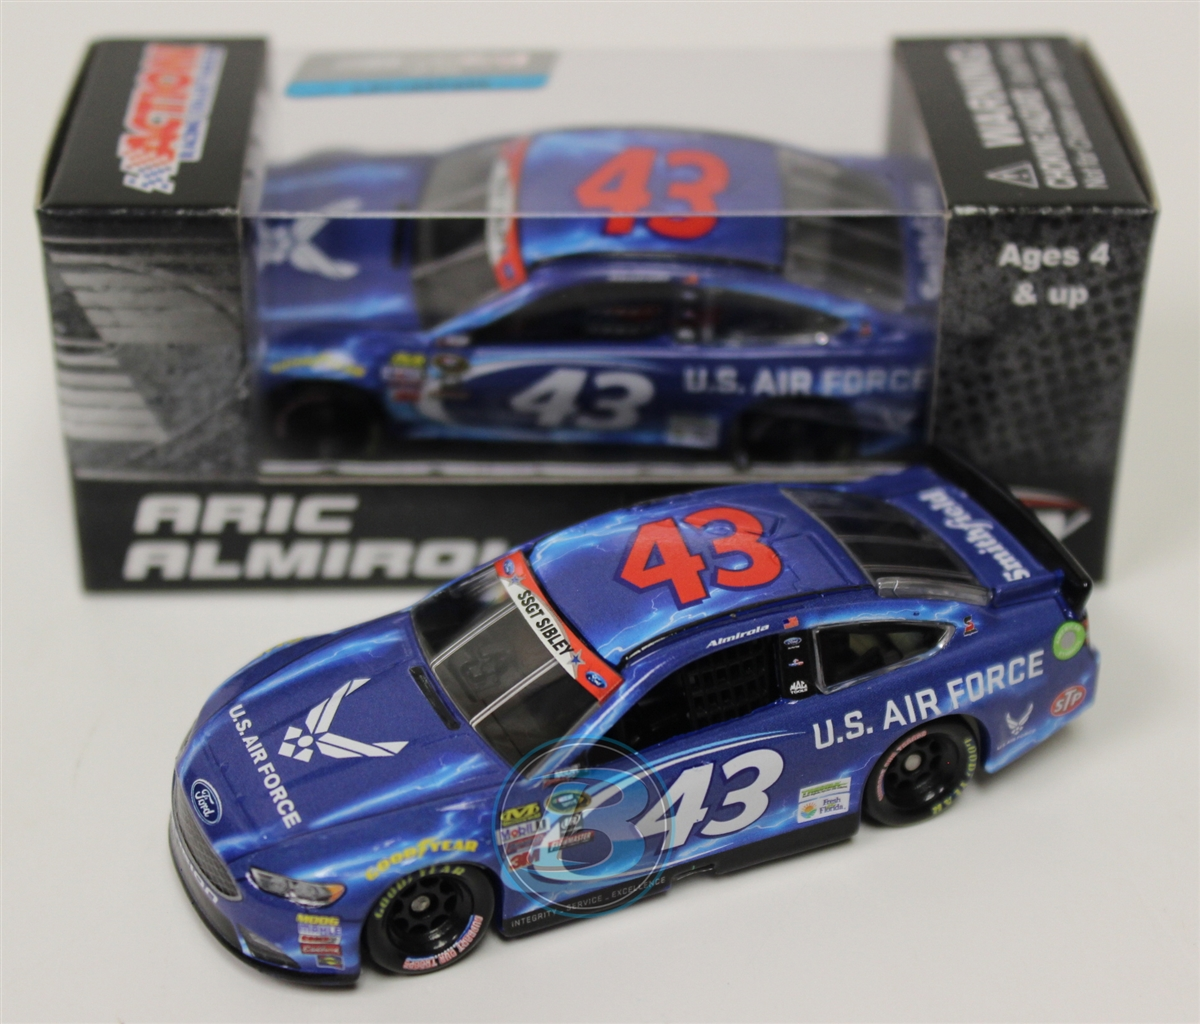 Aric Almirola 2016 Air Force 1:64 Nascar Diecast by Lionel Racing